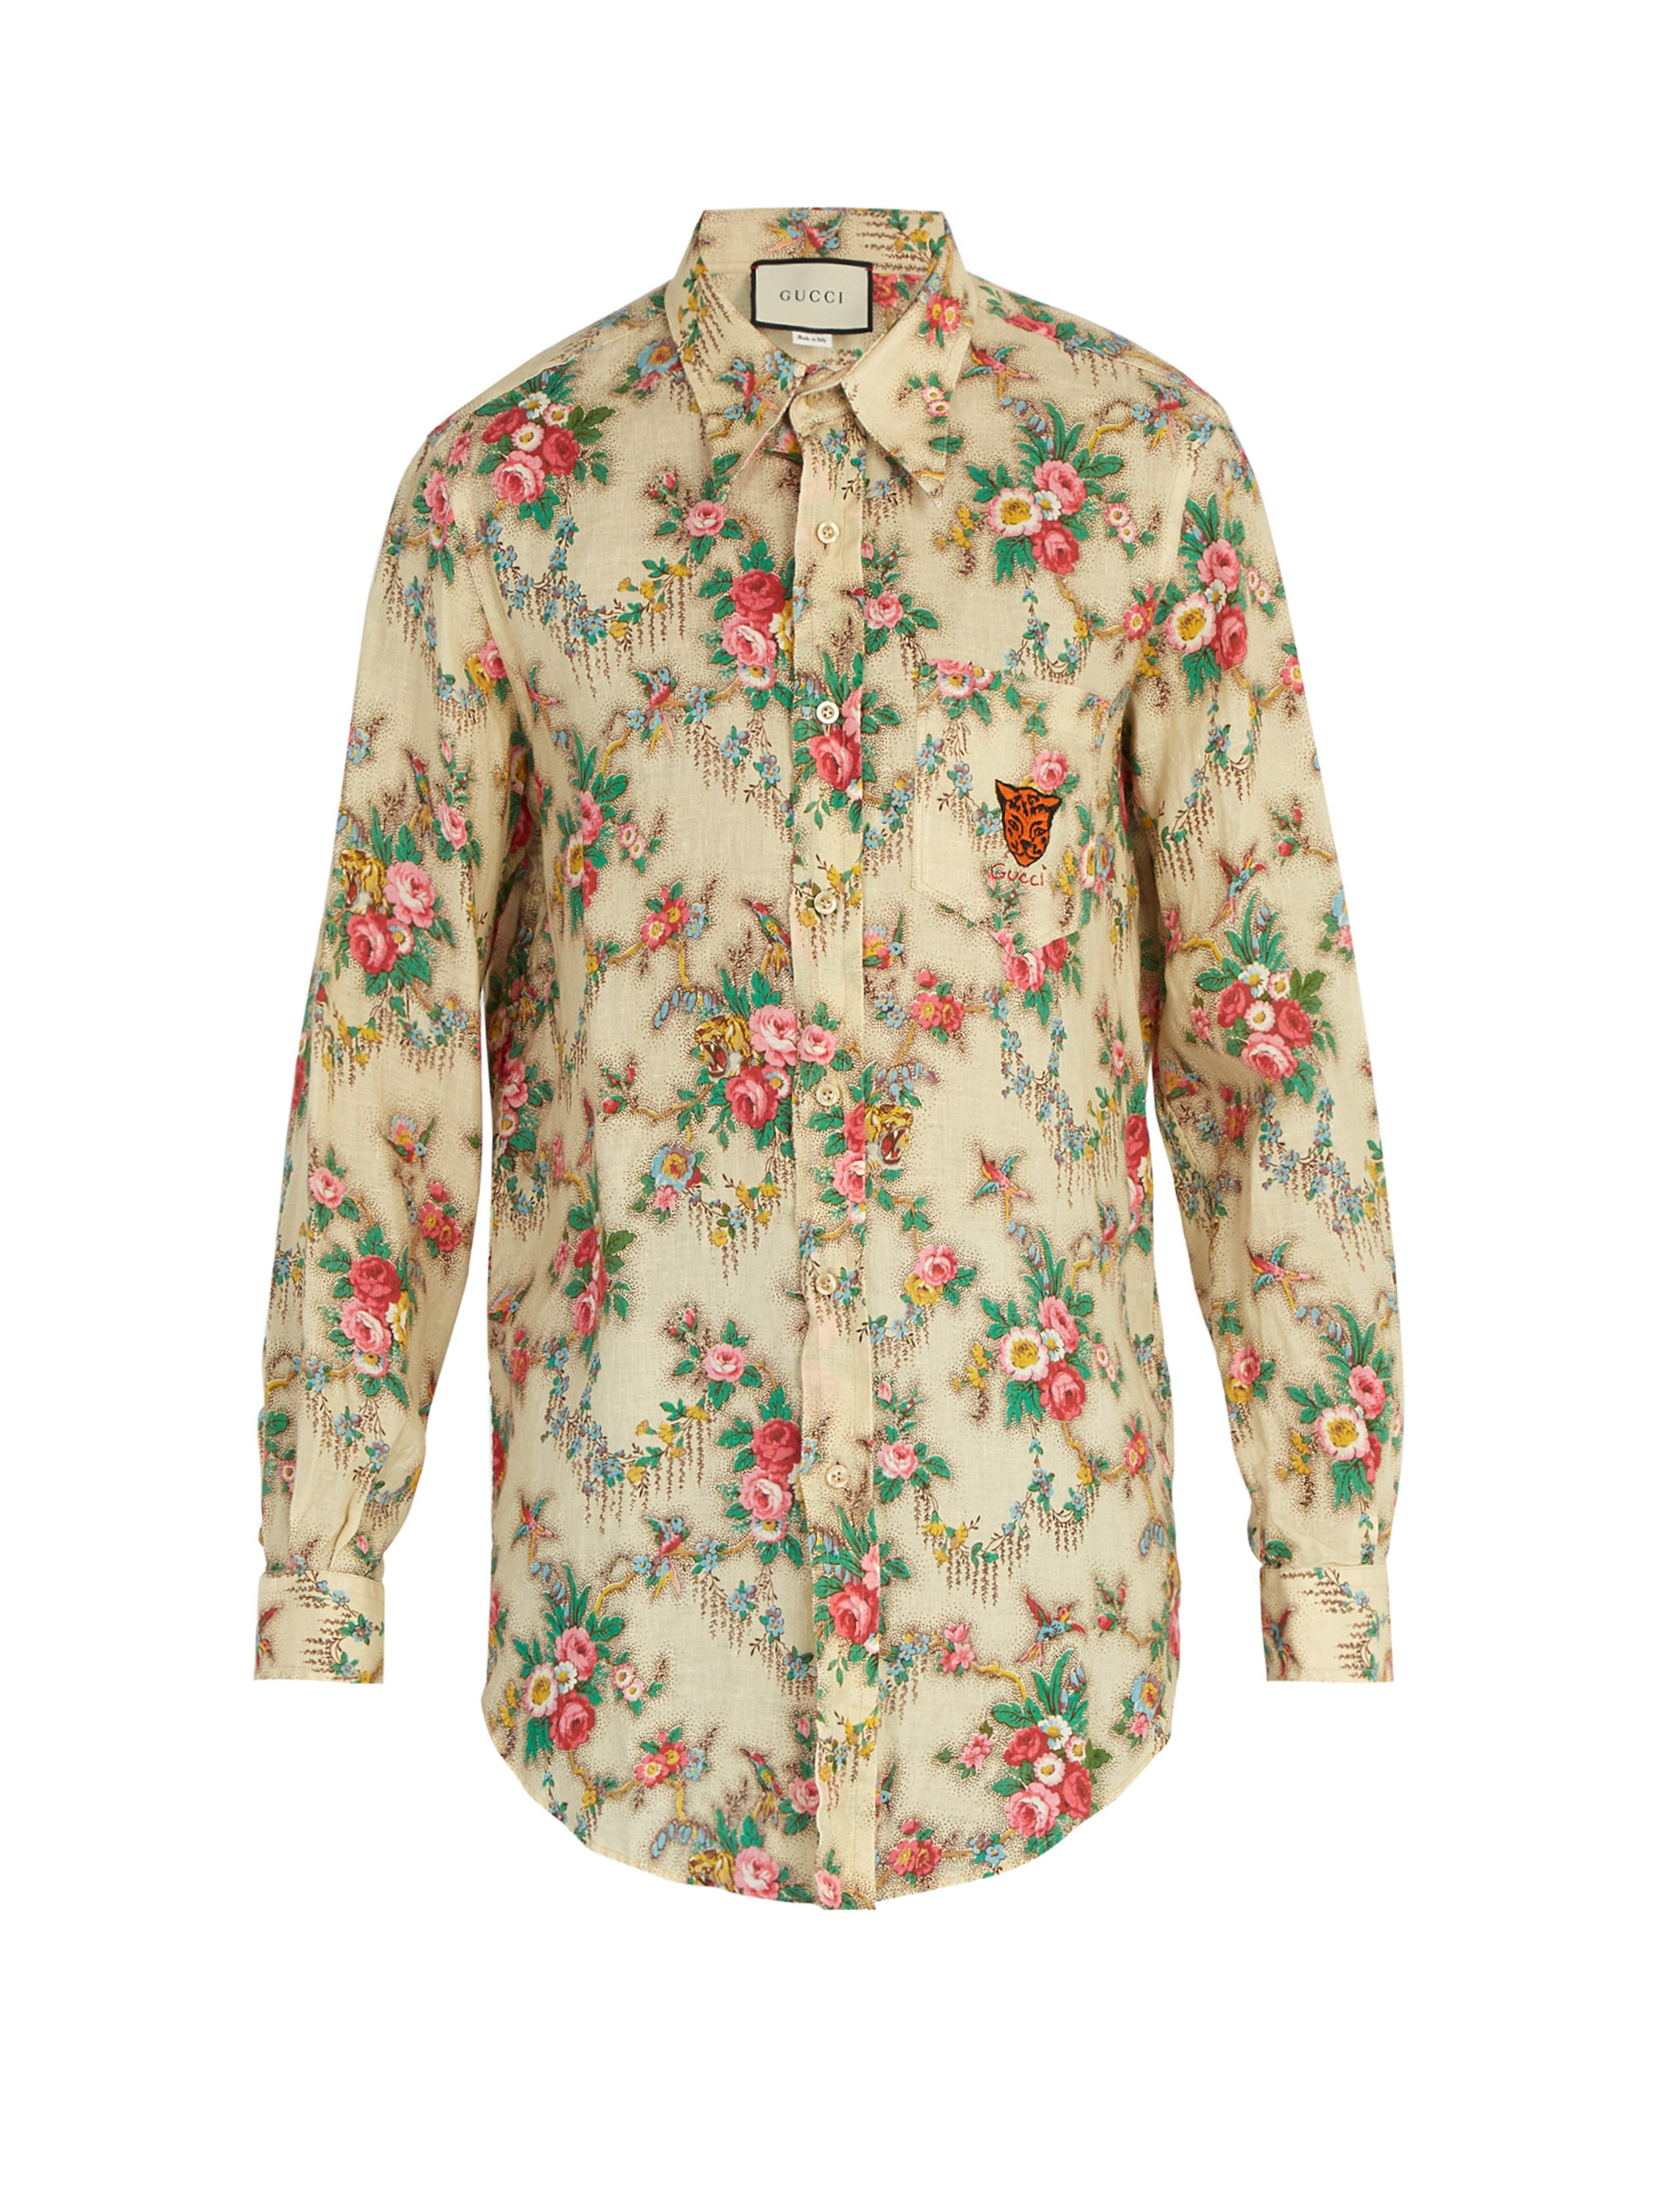 68b1cb1d502 Gucci - Multicolor Tiger Embroidered Floral Print Linen Shirt for Men - Lyst.  View fullscreen